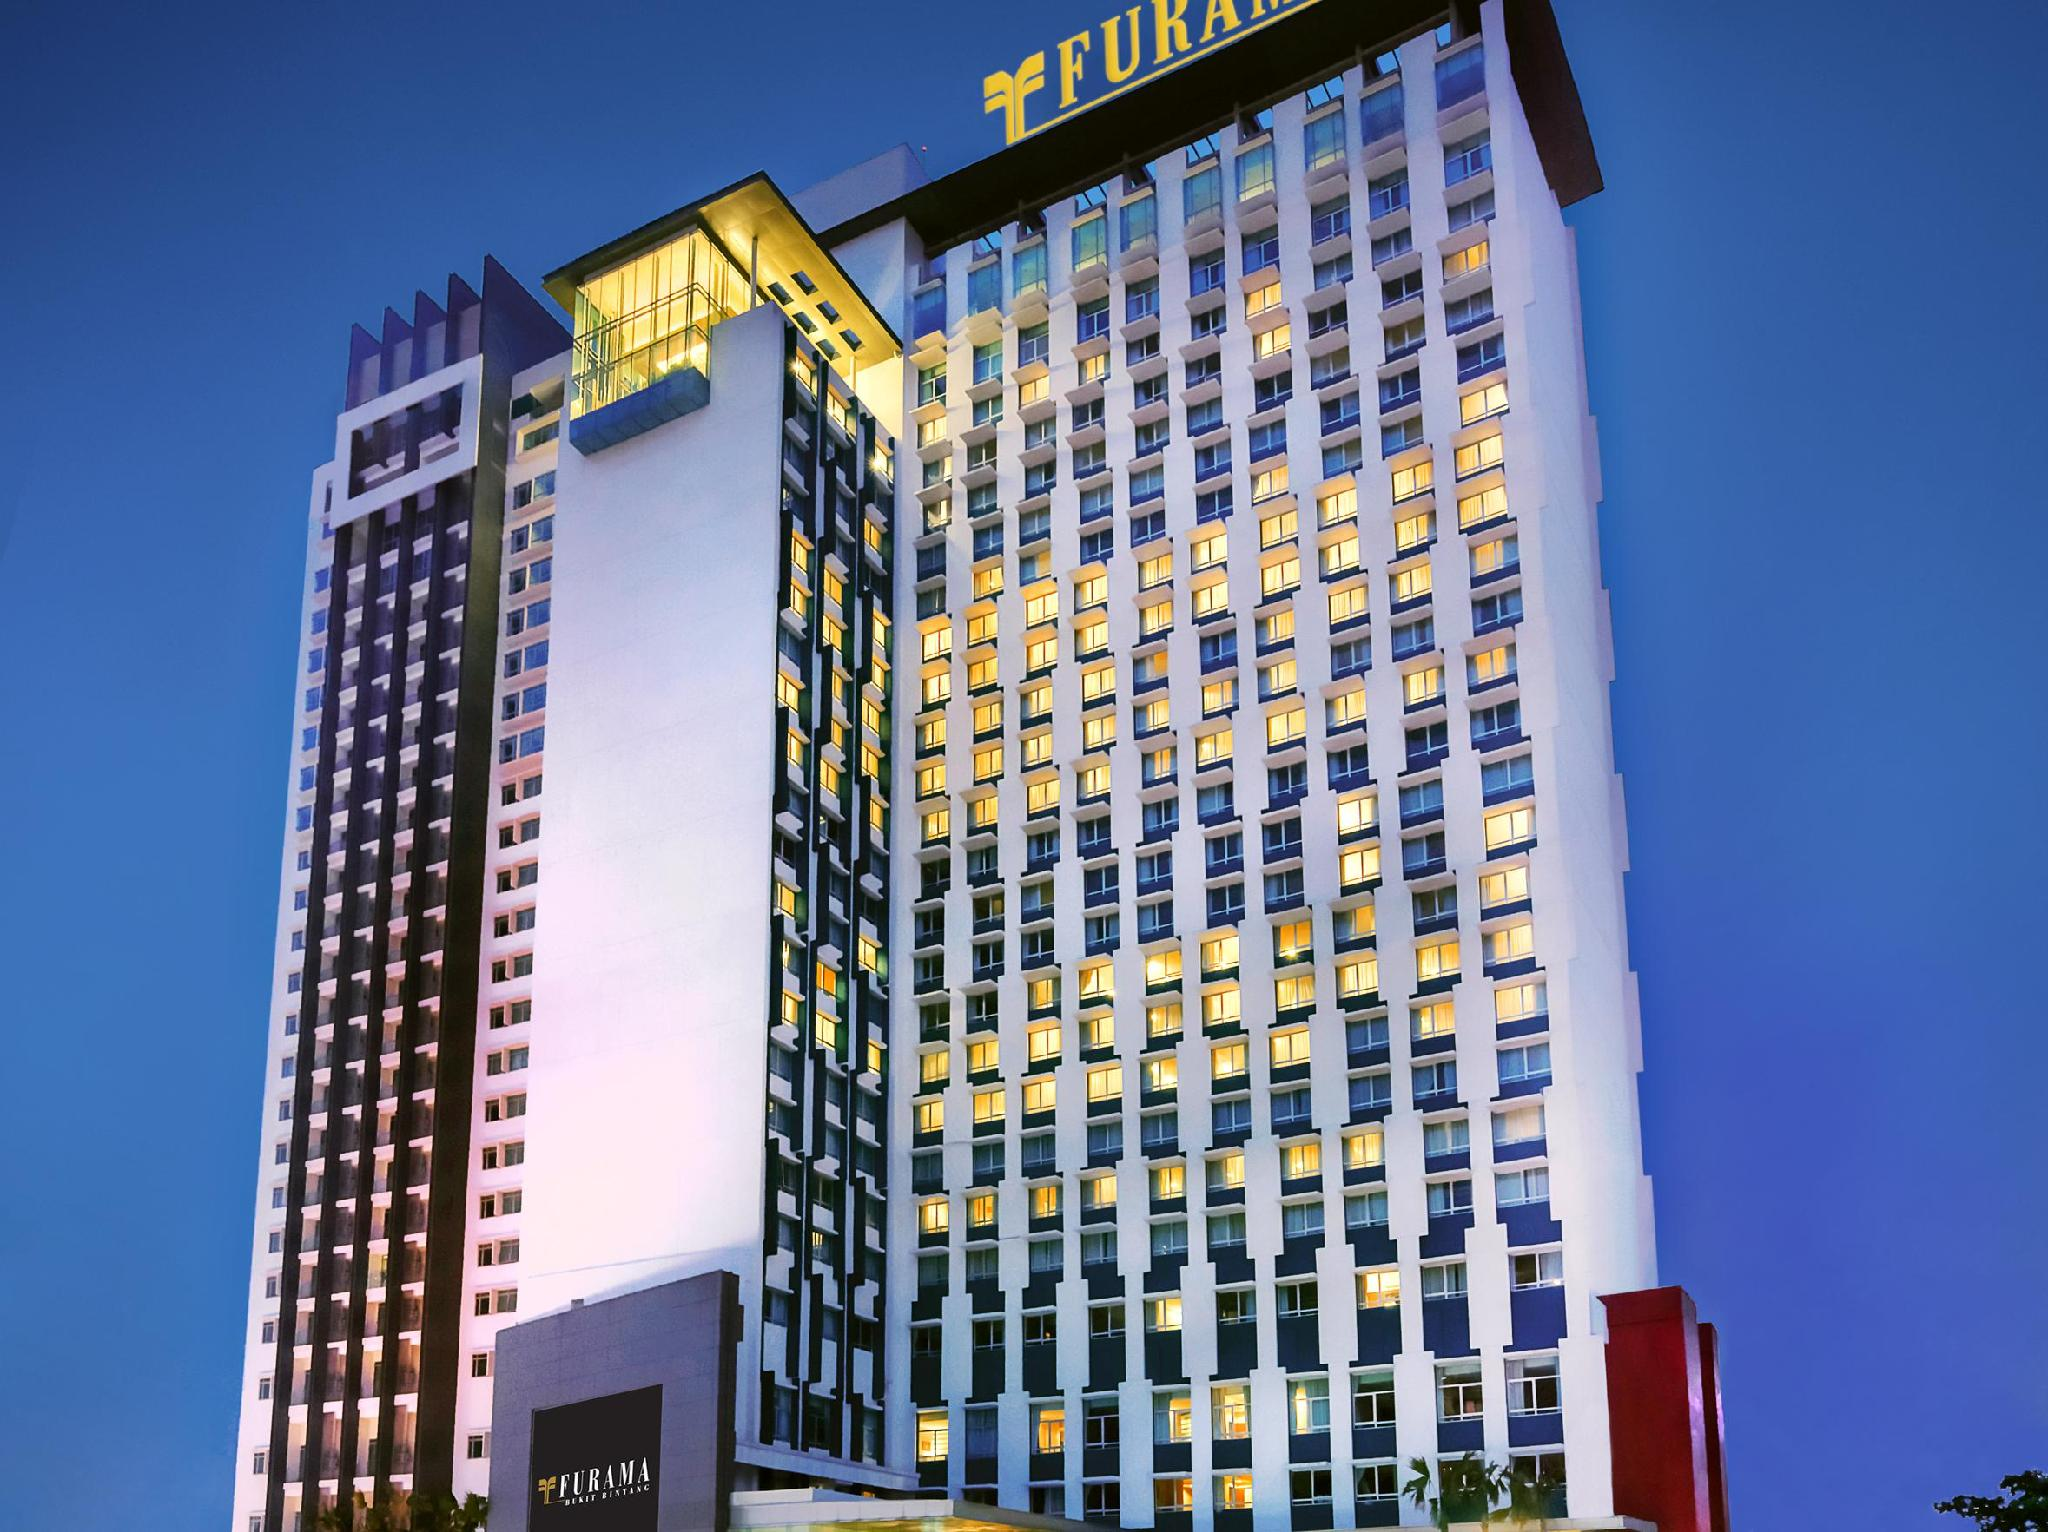 Furama Hotel Bukit Bintang - Hotels and Accommodation in Malaysia, Asia